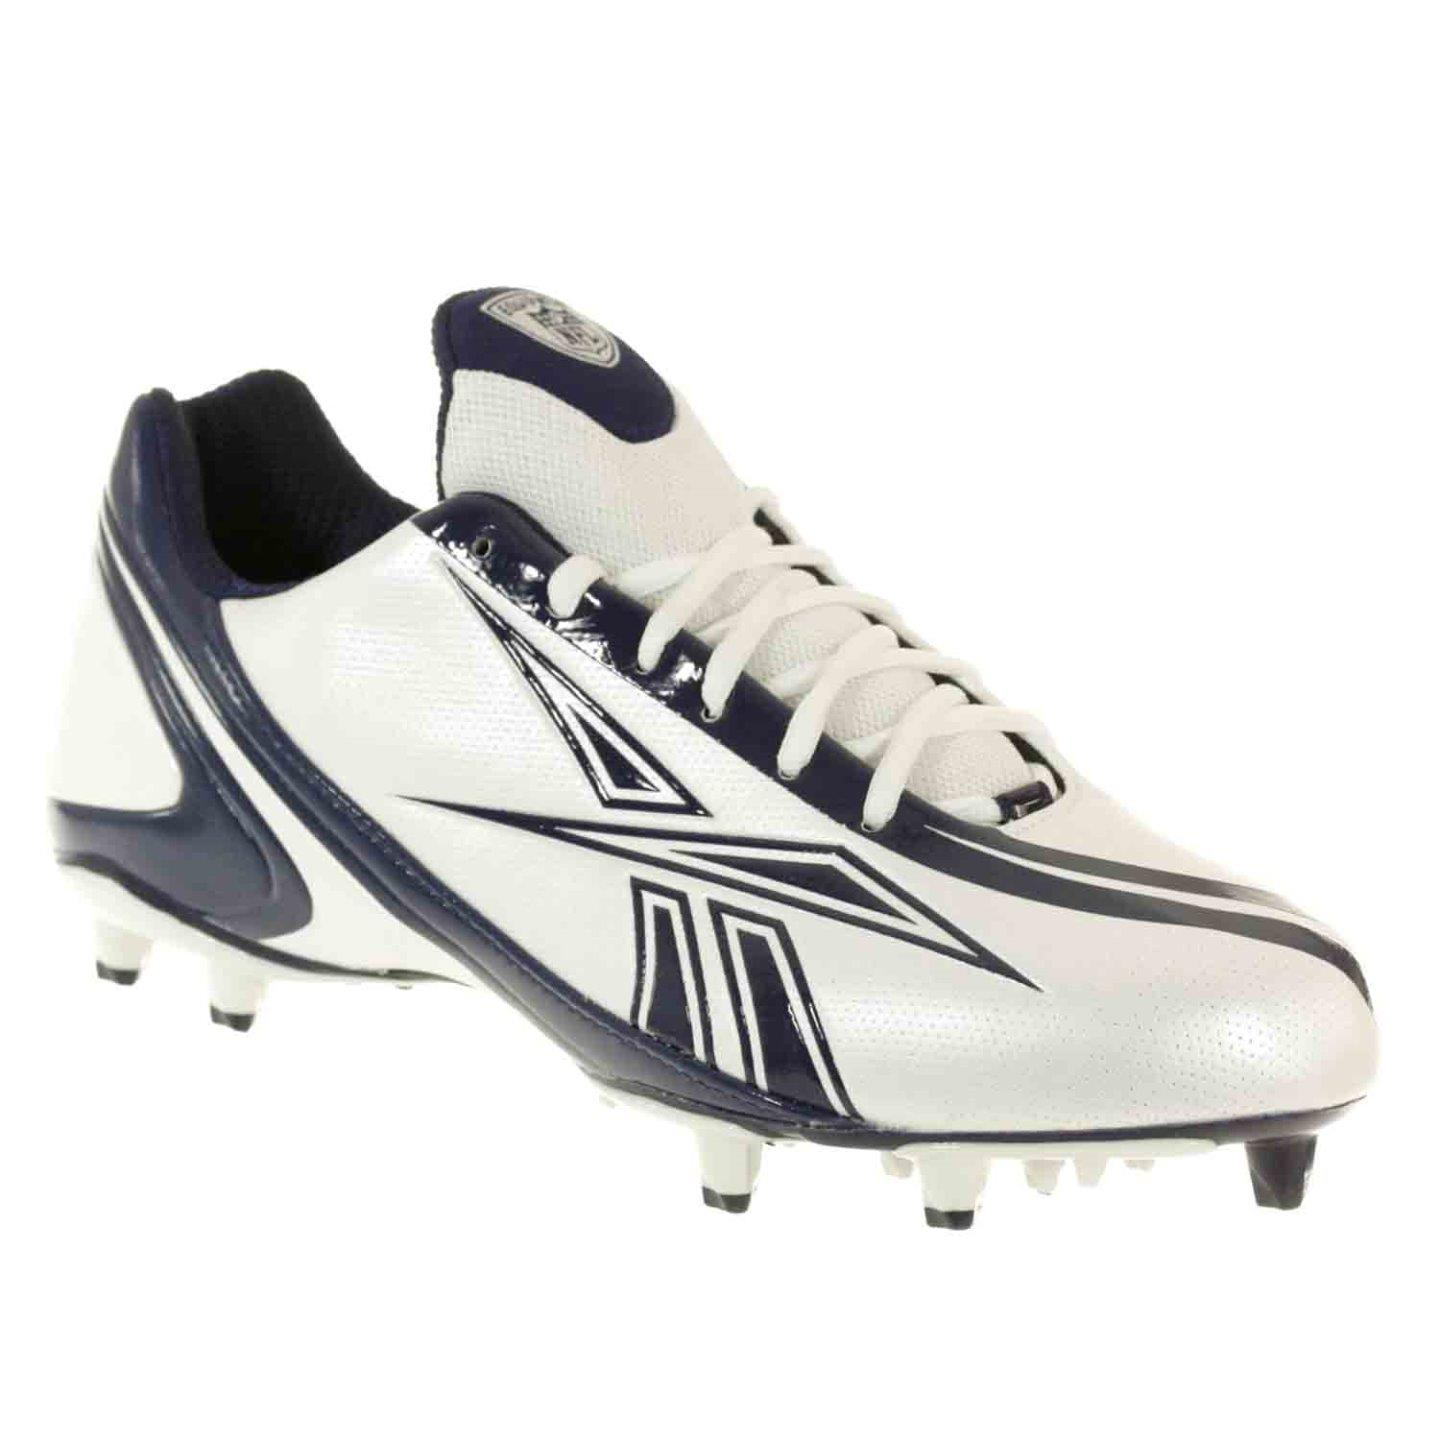 REEBOK MEN'S NFL BURNER SPEED LOW M3 WHITE ROYAL MOLDED FOOTBALL CLEATS 7.5 M